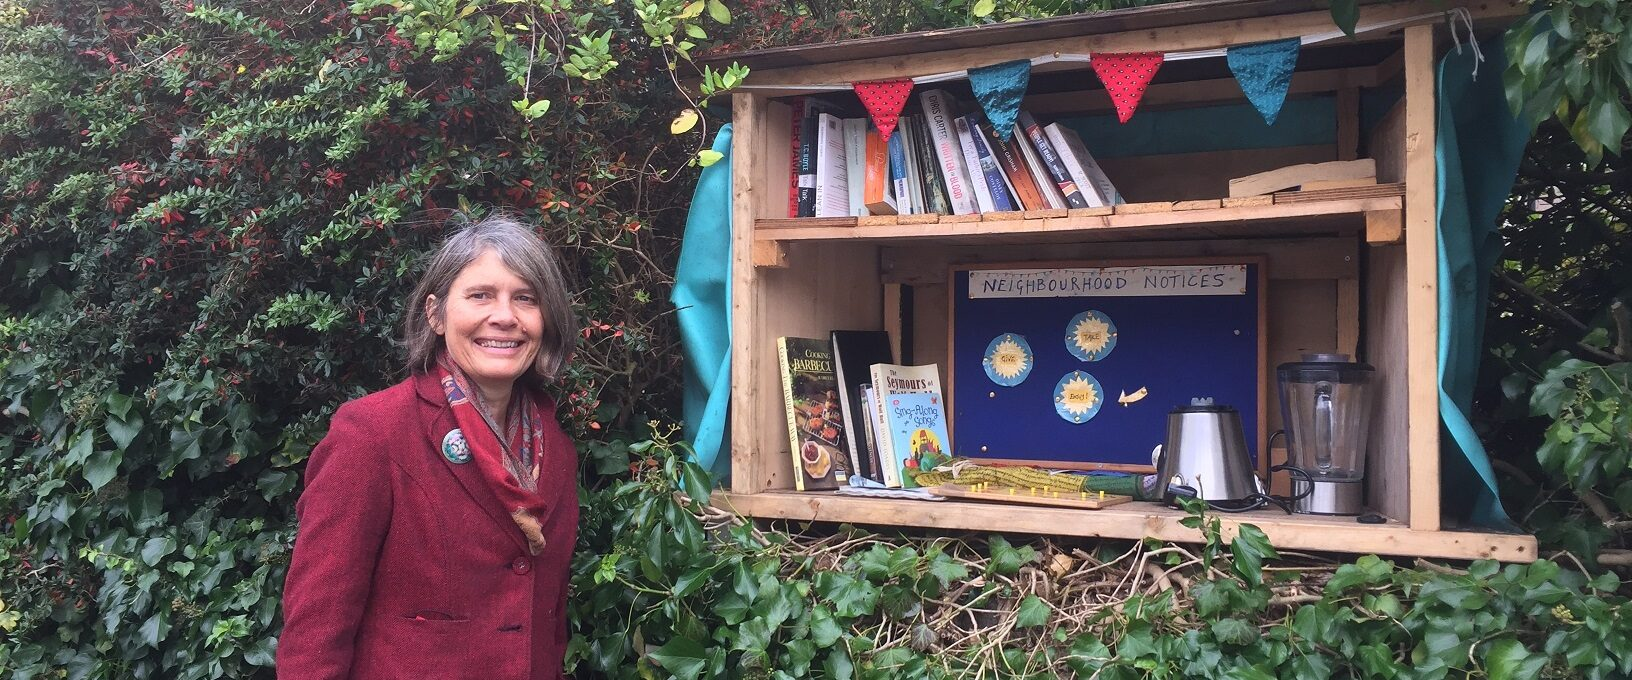 Photo of lady next to the Nunney Road share box